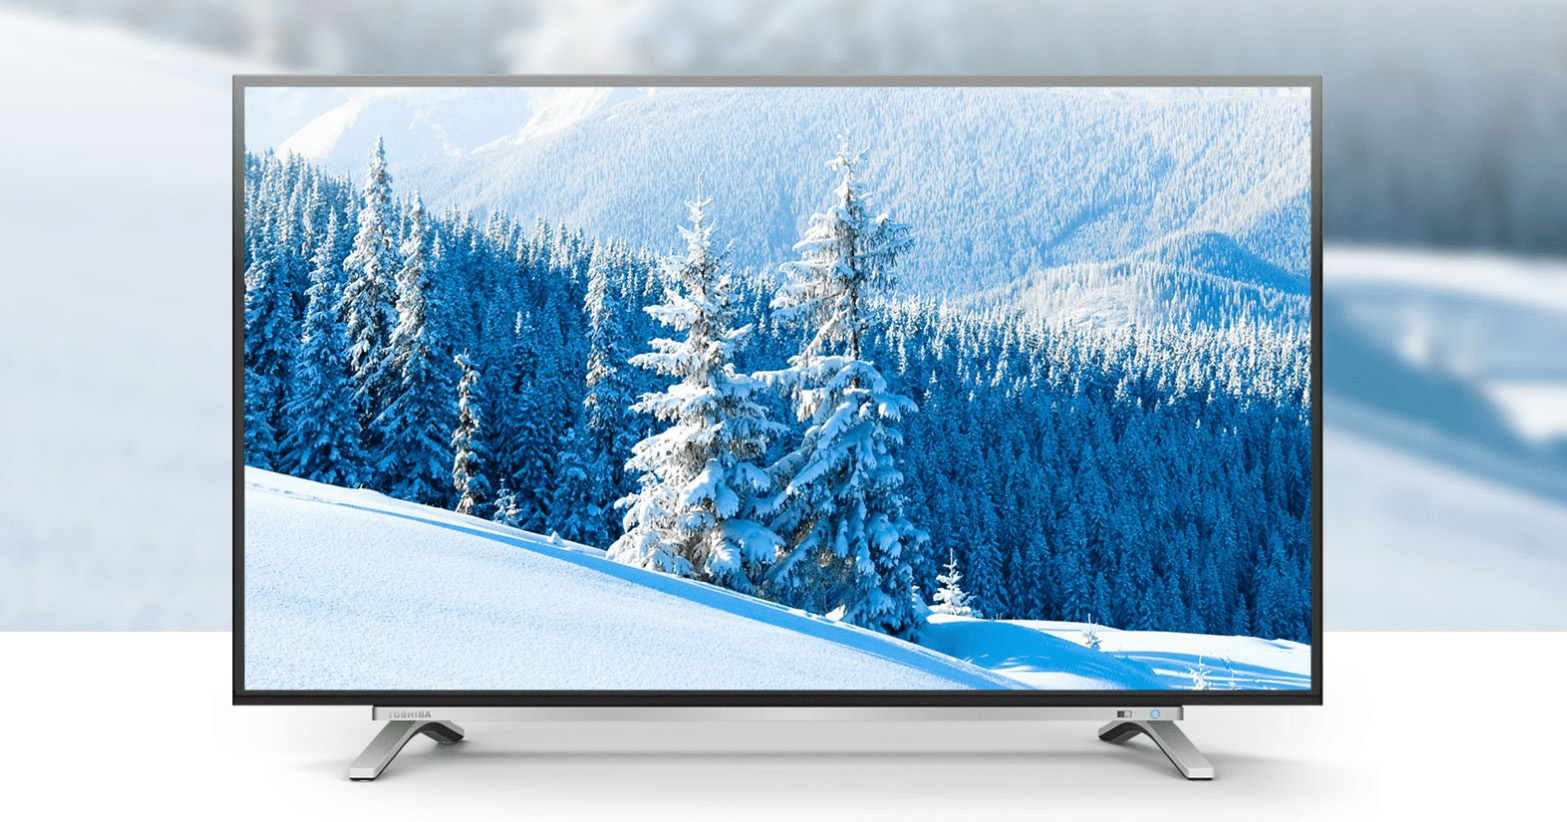 Обзор и тест телевизора Toshiba 32L5069 Smart TV